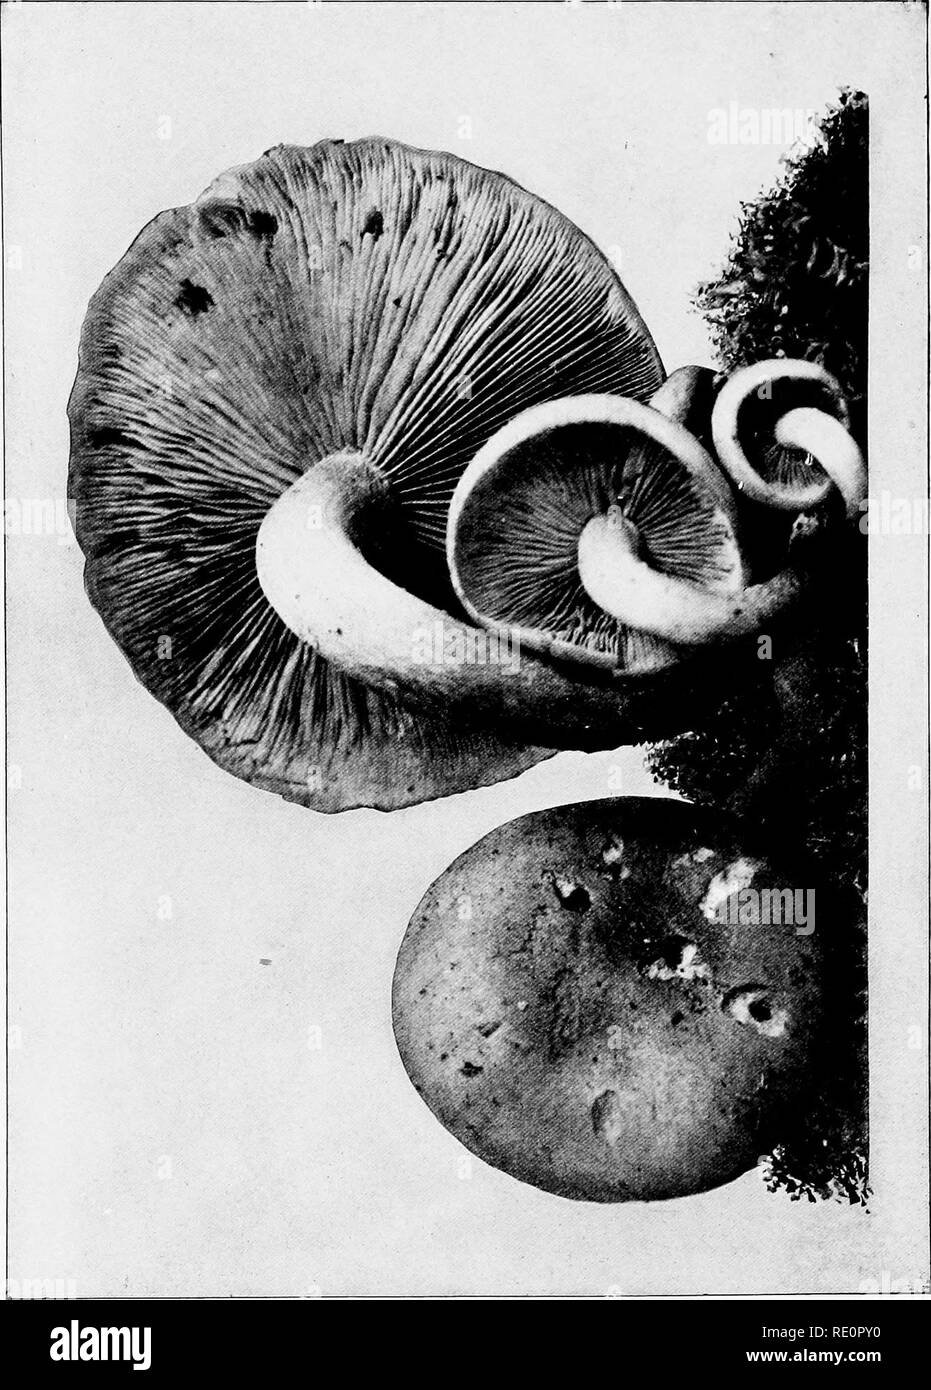 . The mushroom book : a popular guide to the identification and study of our commoner Fungi, with special emphasis on the edible varieties . Mushrooms; Mushrooms, Edible; Cookery (Mushrooms); cbk. I. Please note that these images are extracted from scanned page images that may have been digitally enhanced for readability - coloration and appearance of these illustrations may not perfectly resemble the original work.. Marshall, Nina L. (Nina Lovering). Garden City, N. Y. : Doubleday, Page - Stock Image